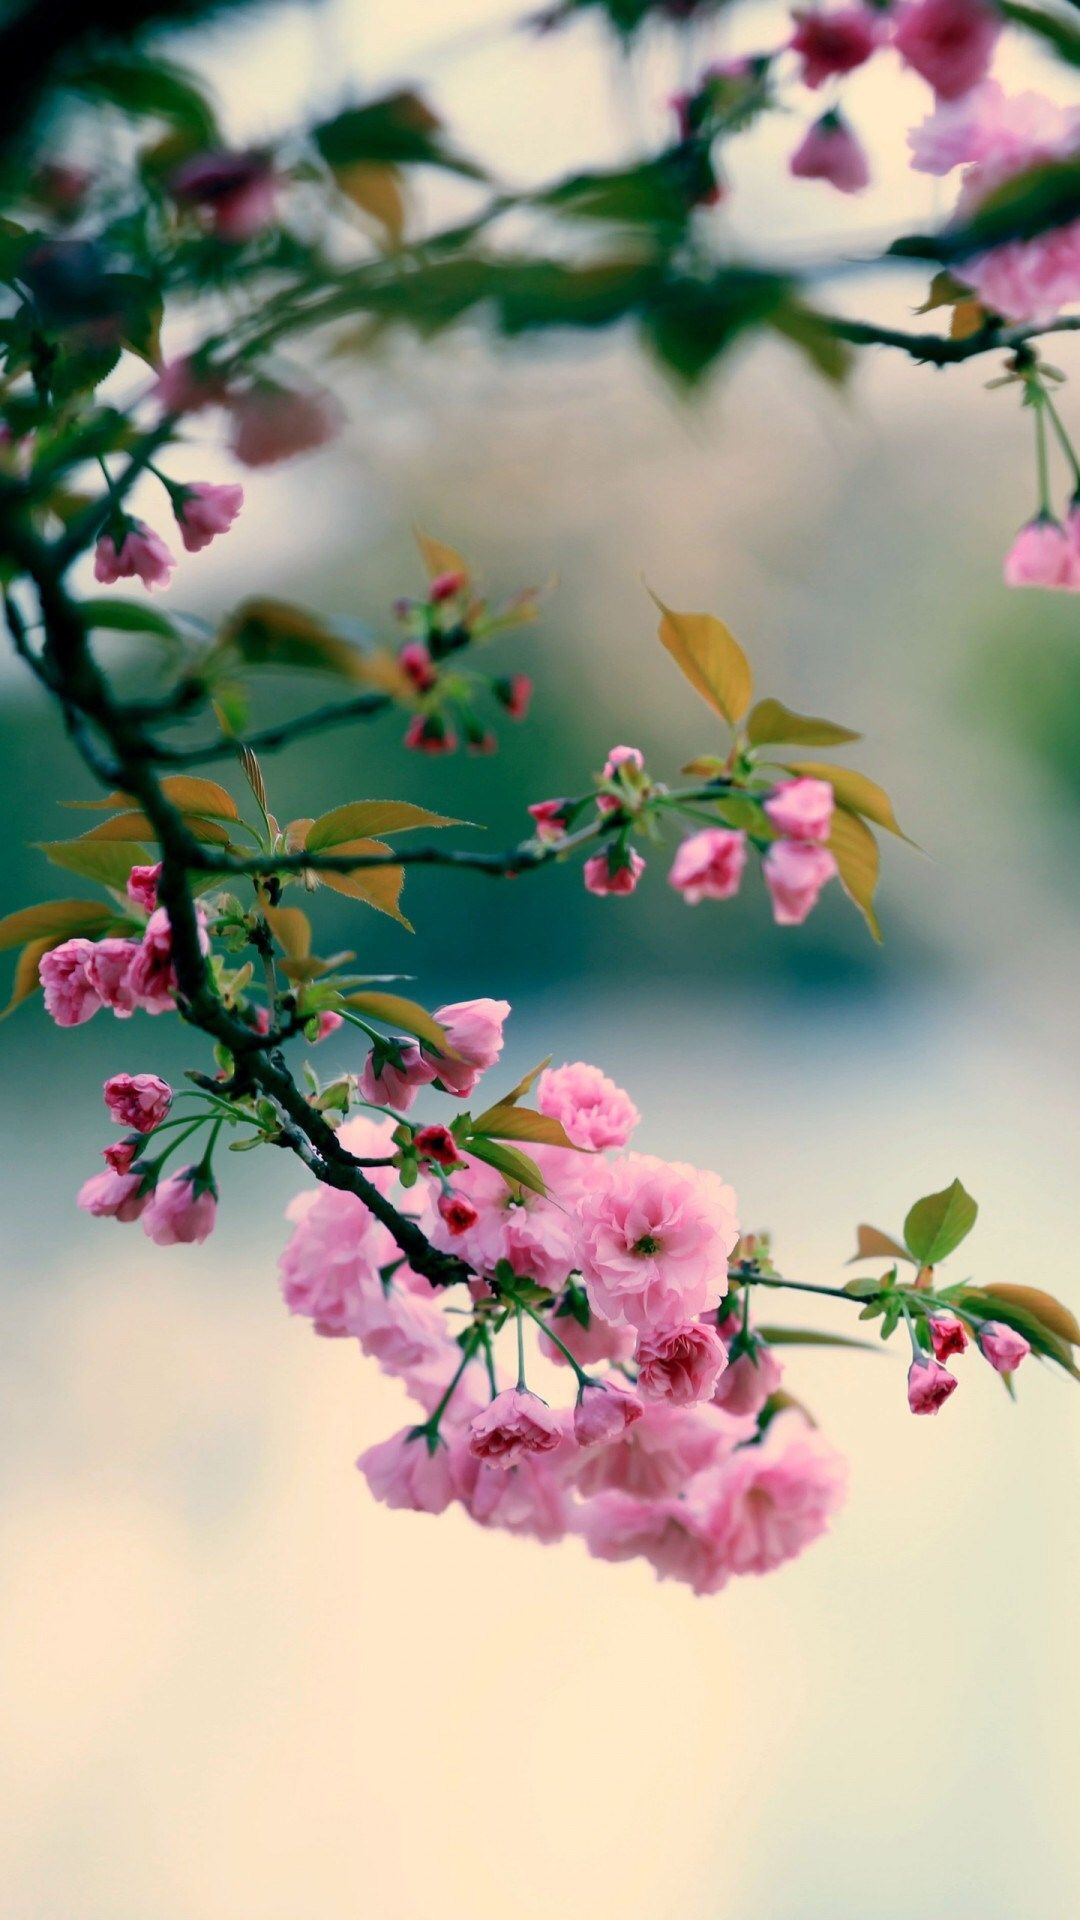 Nature Spring Plum Branch Bokeh Blur Iphone 8 Wallpapers Beautiful Flowers Wallpapers Flowers Photography Wallpaper Flowers Photography